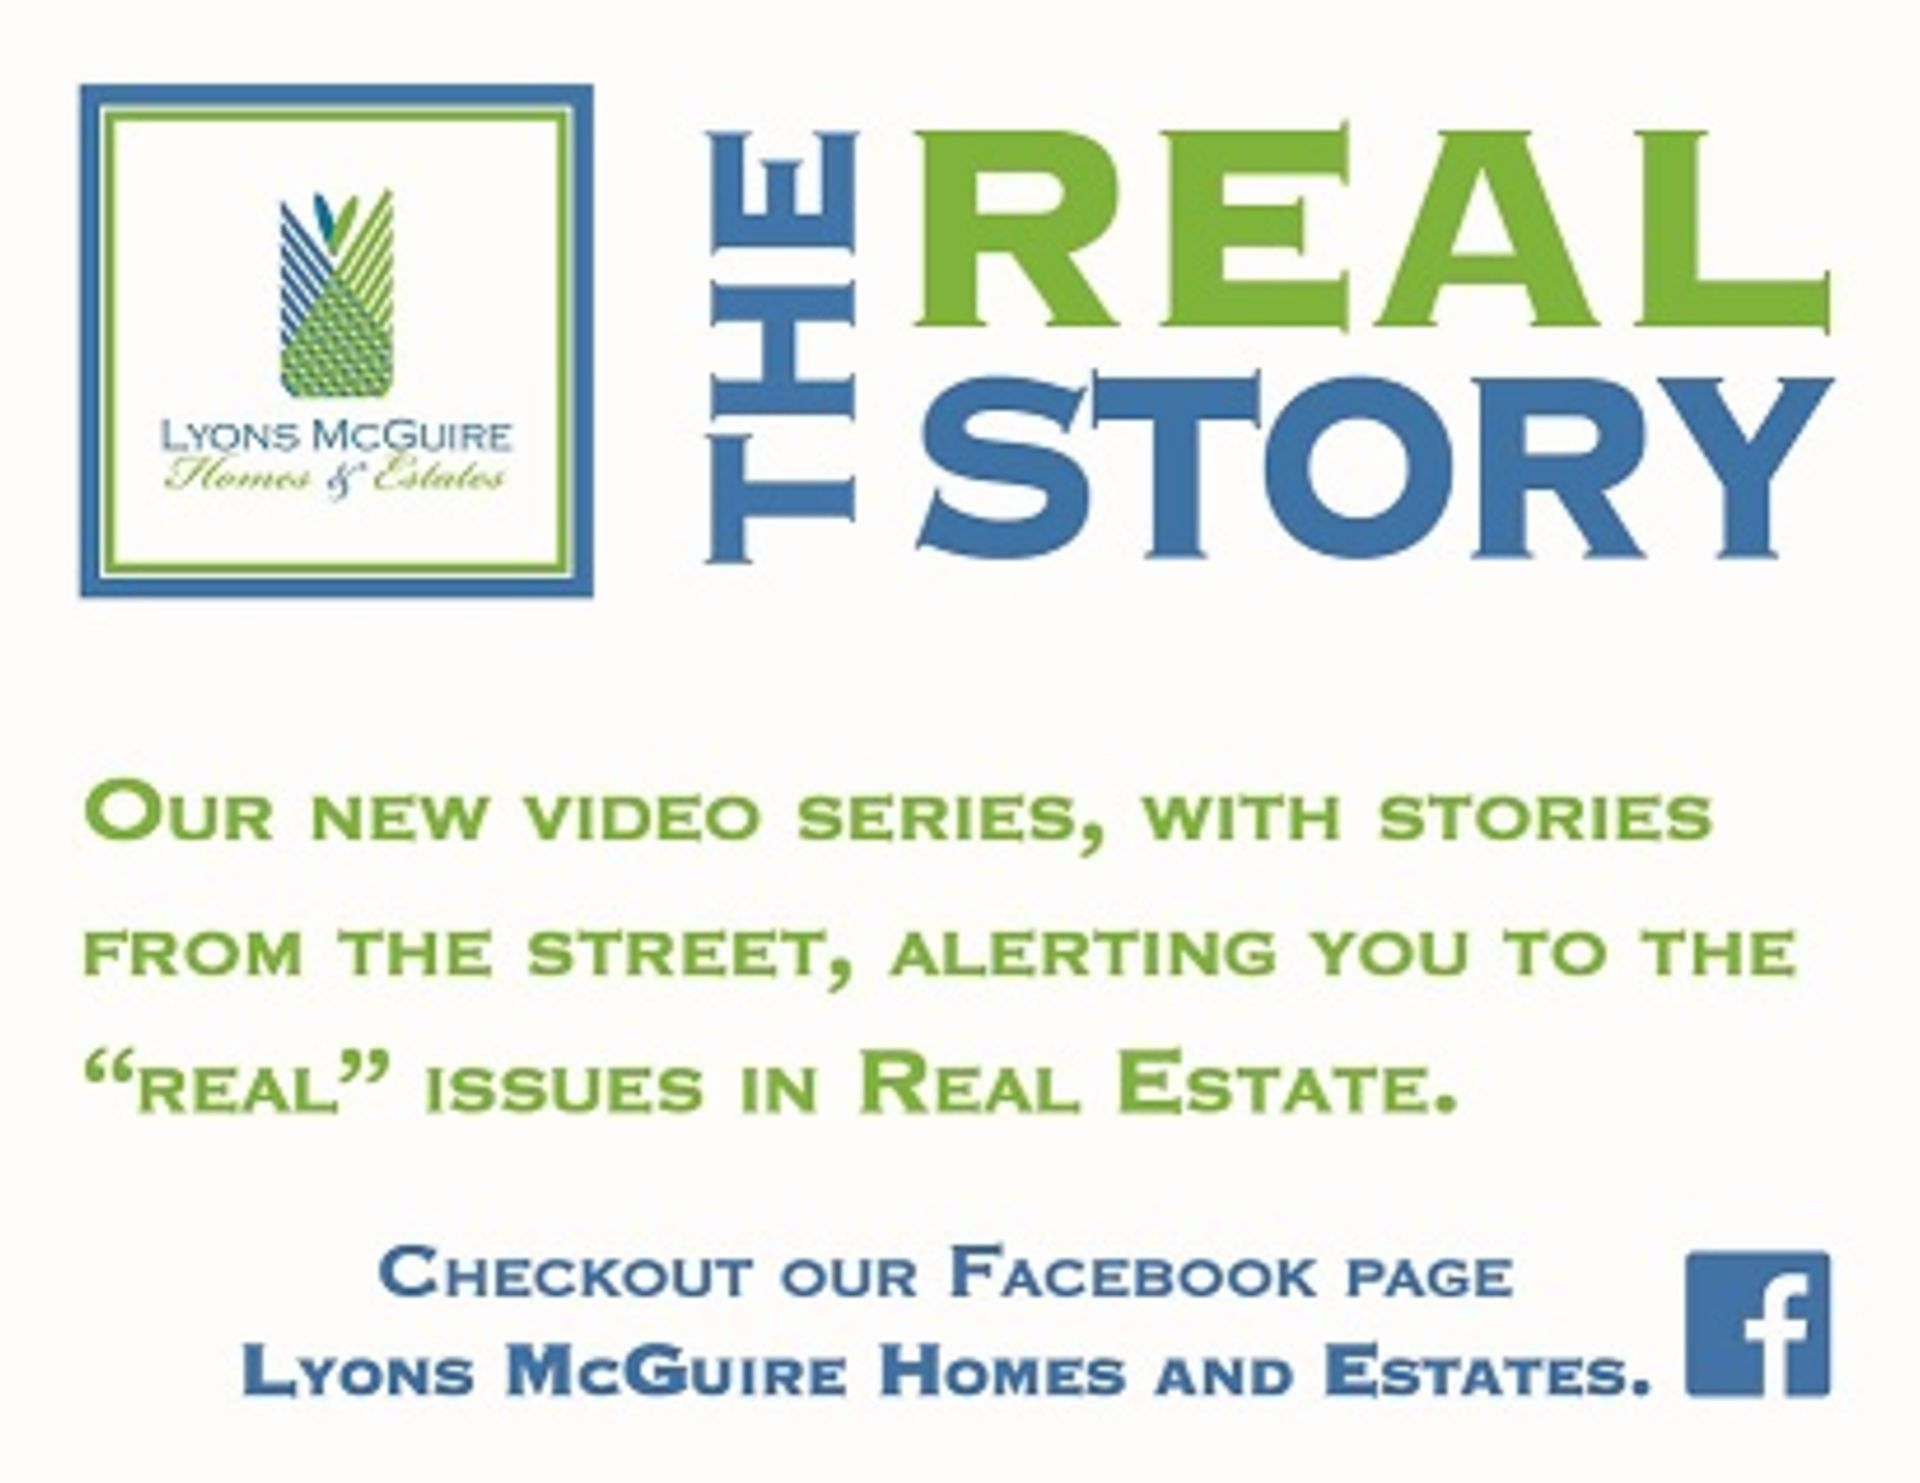 The REAL Story episode # 1  What's in your attic?